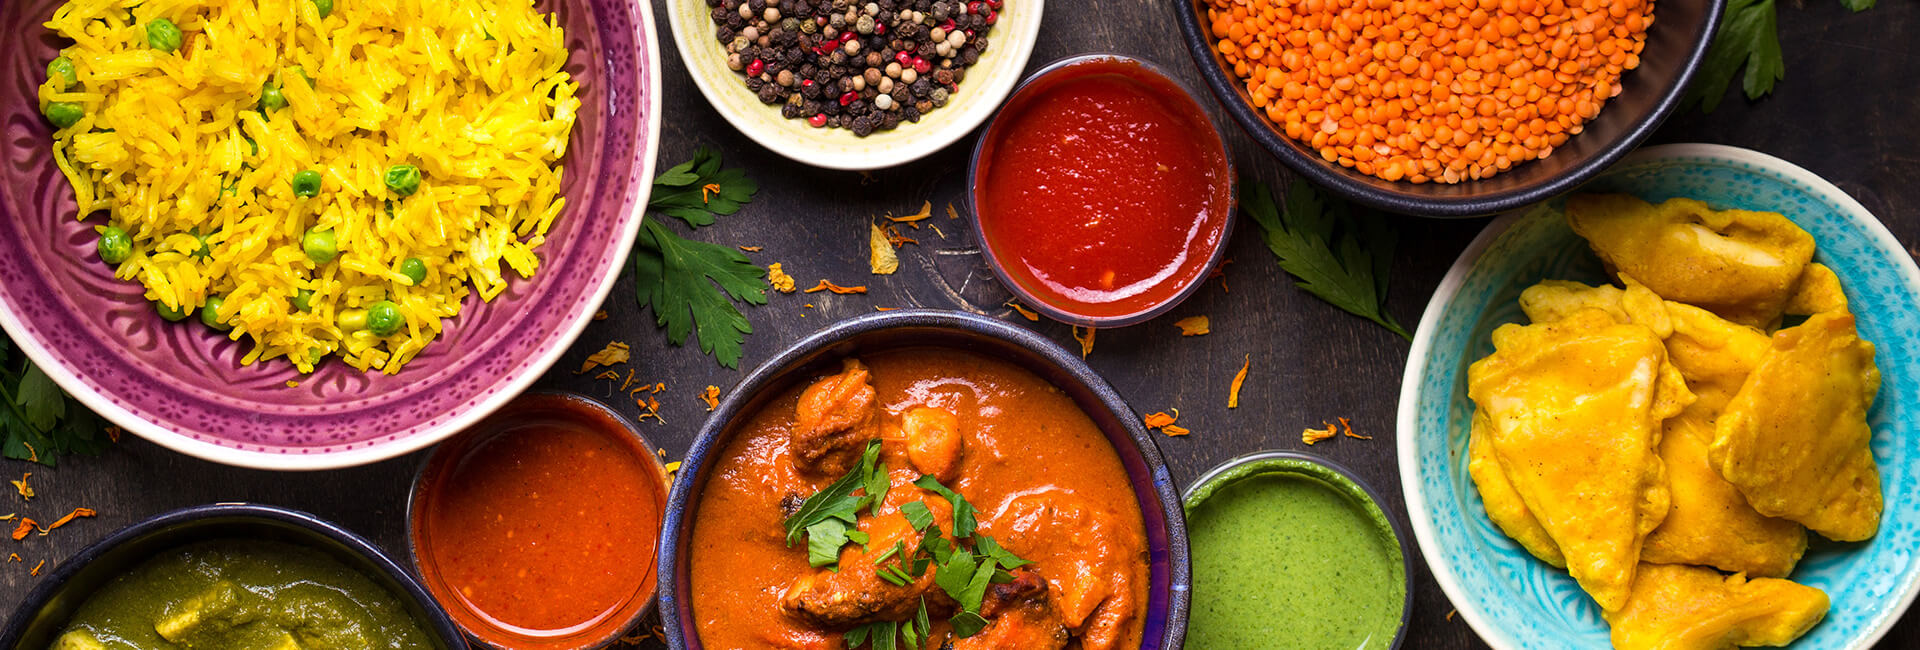 My india recipes for exotic food lovers previousnext forumfinder Choice Image